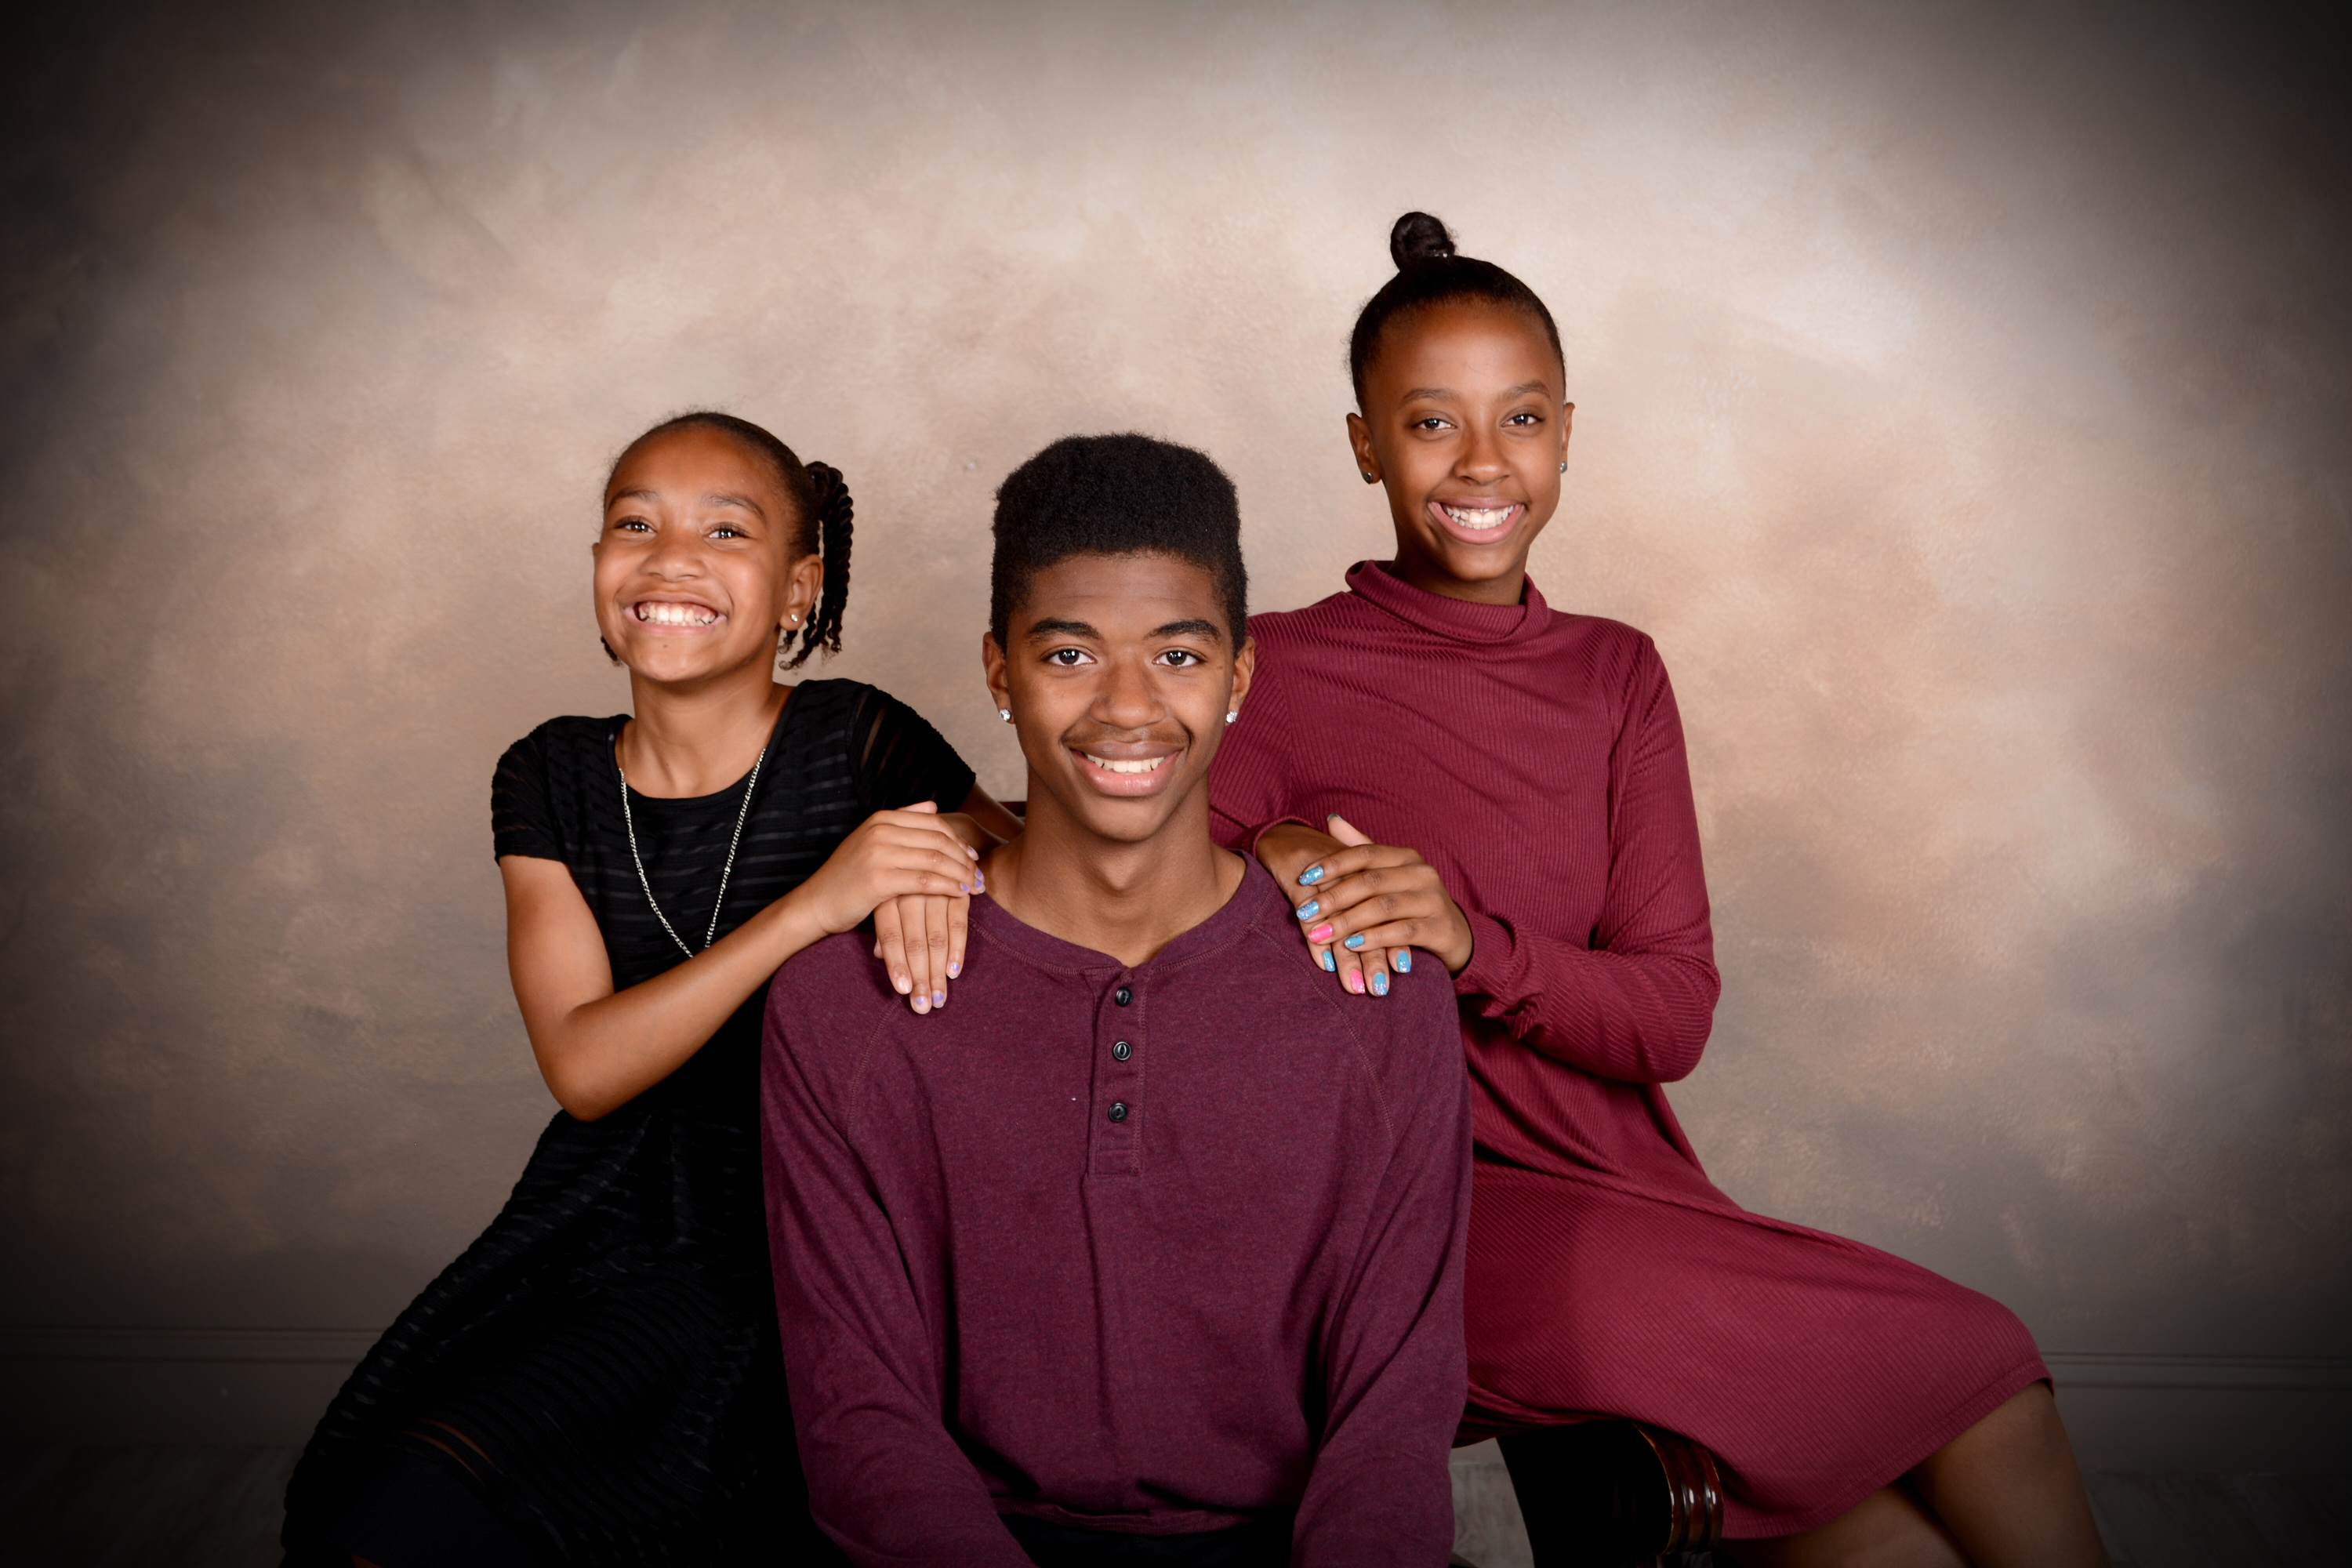 Andrae Michaels portrait studios captures three siblings smiling for the camera